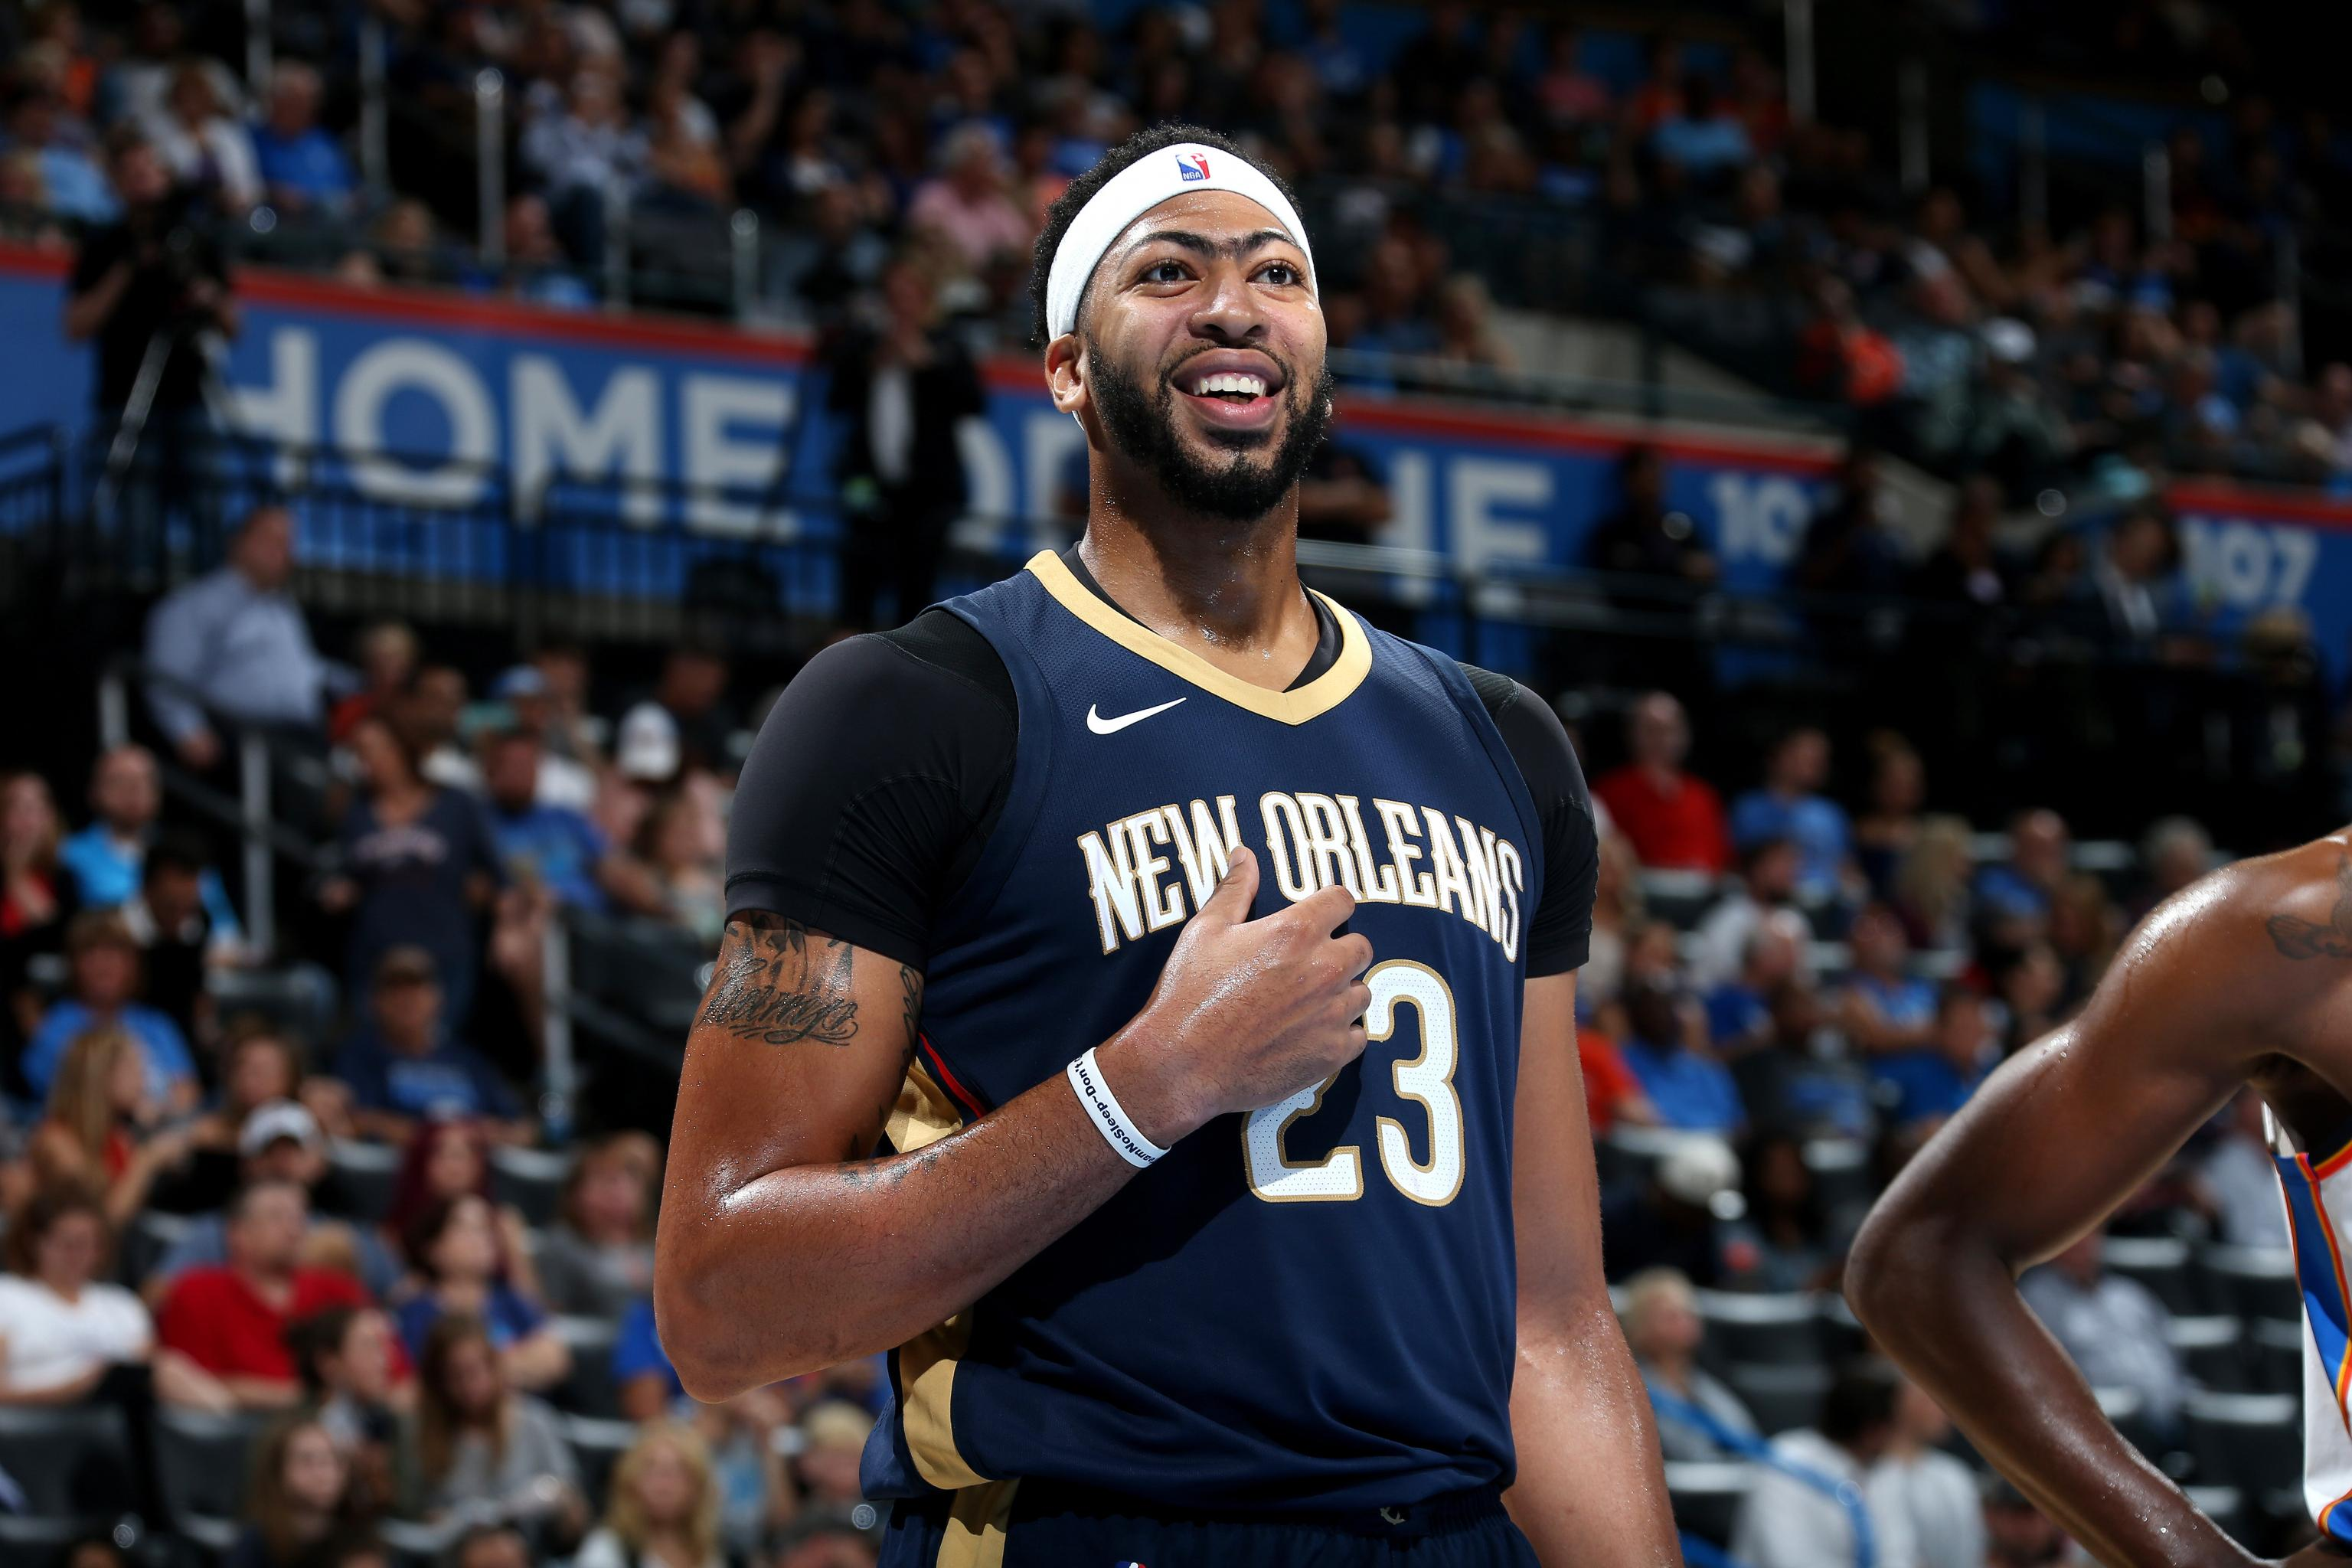 Anthony Davis Nike Reportedly Agree To New Endorsement